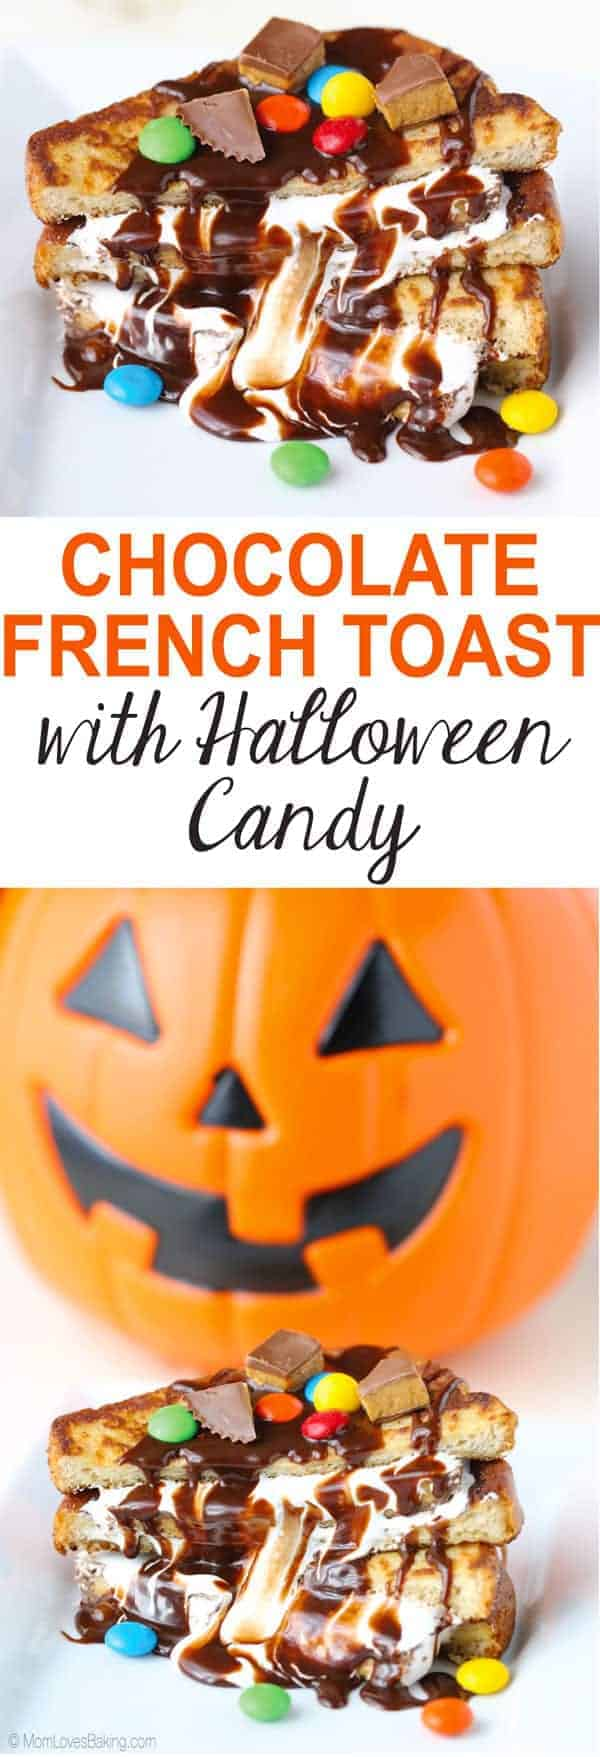 Chocolate French Toast Sandwich with Halloween Candy